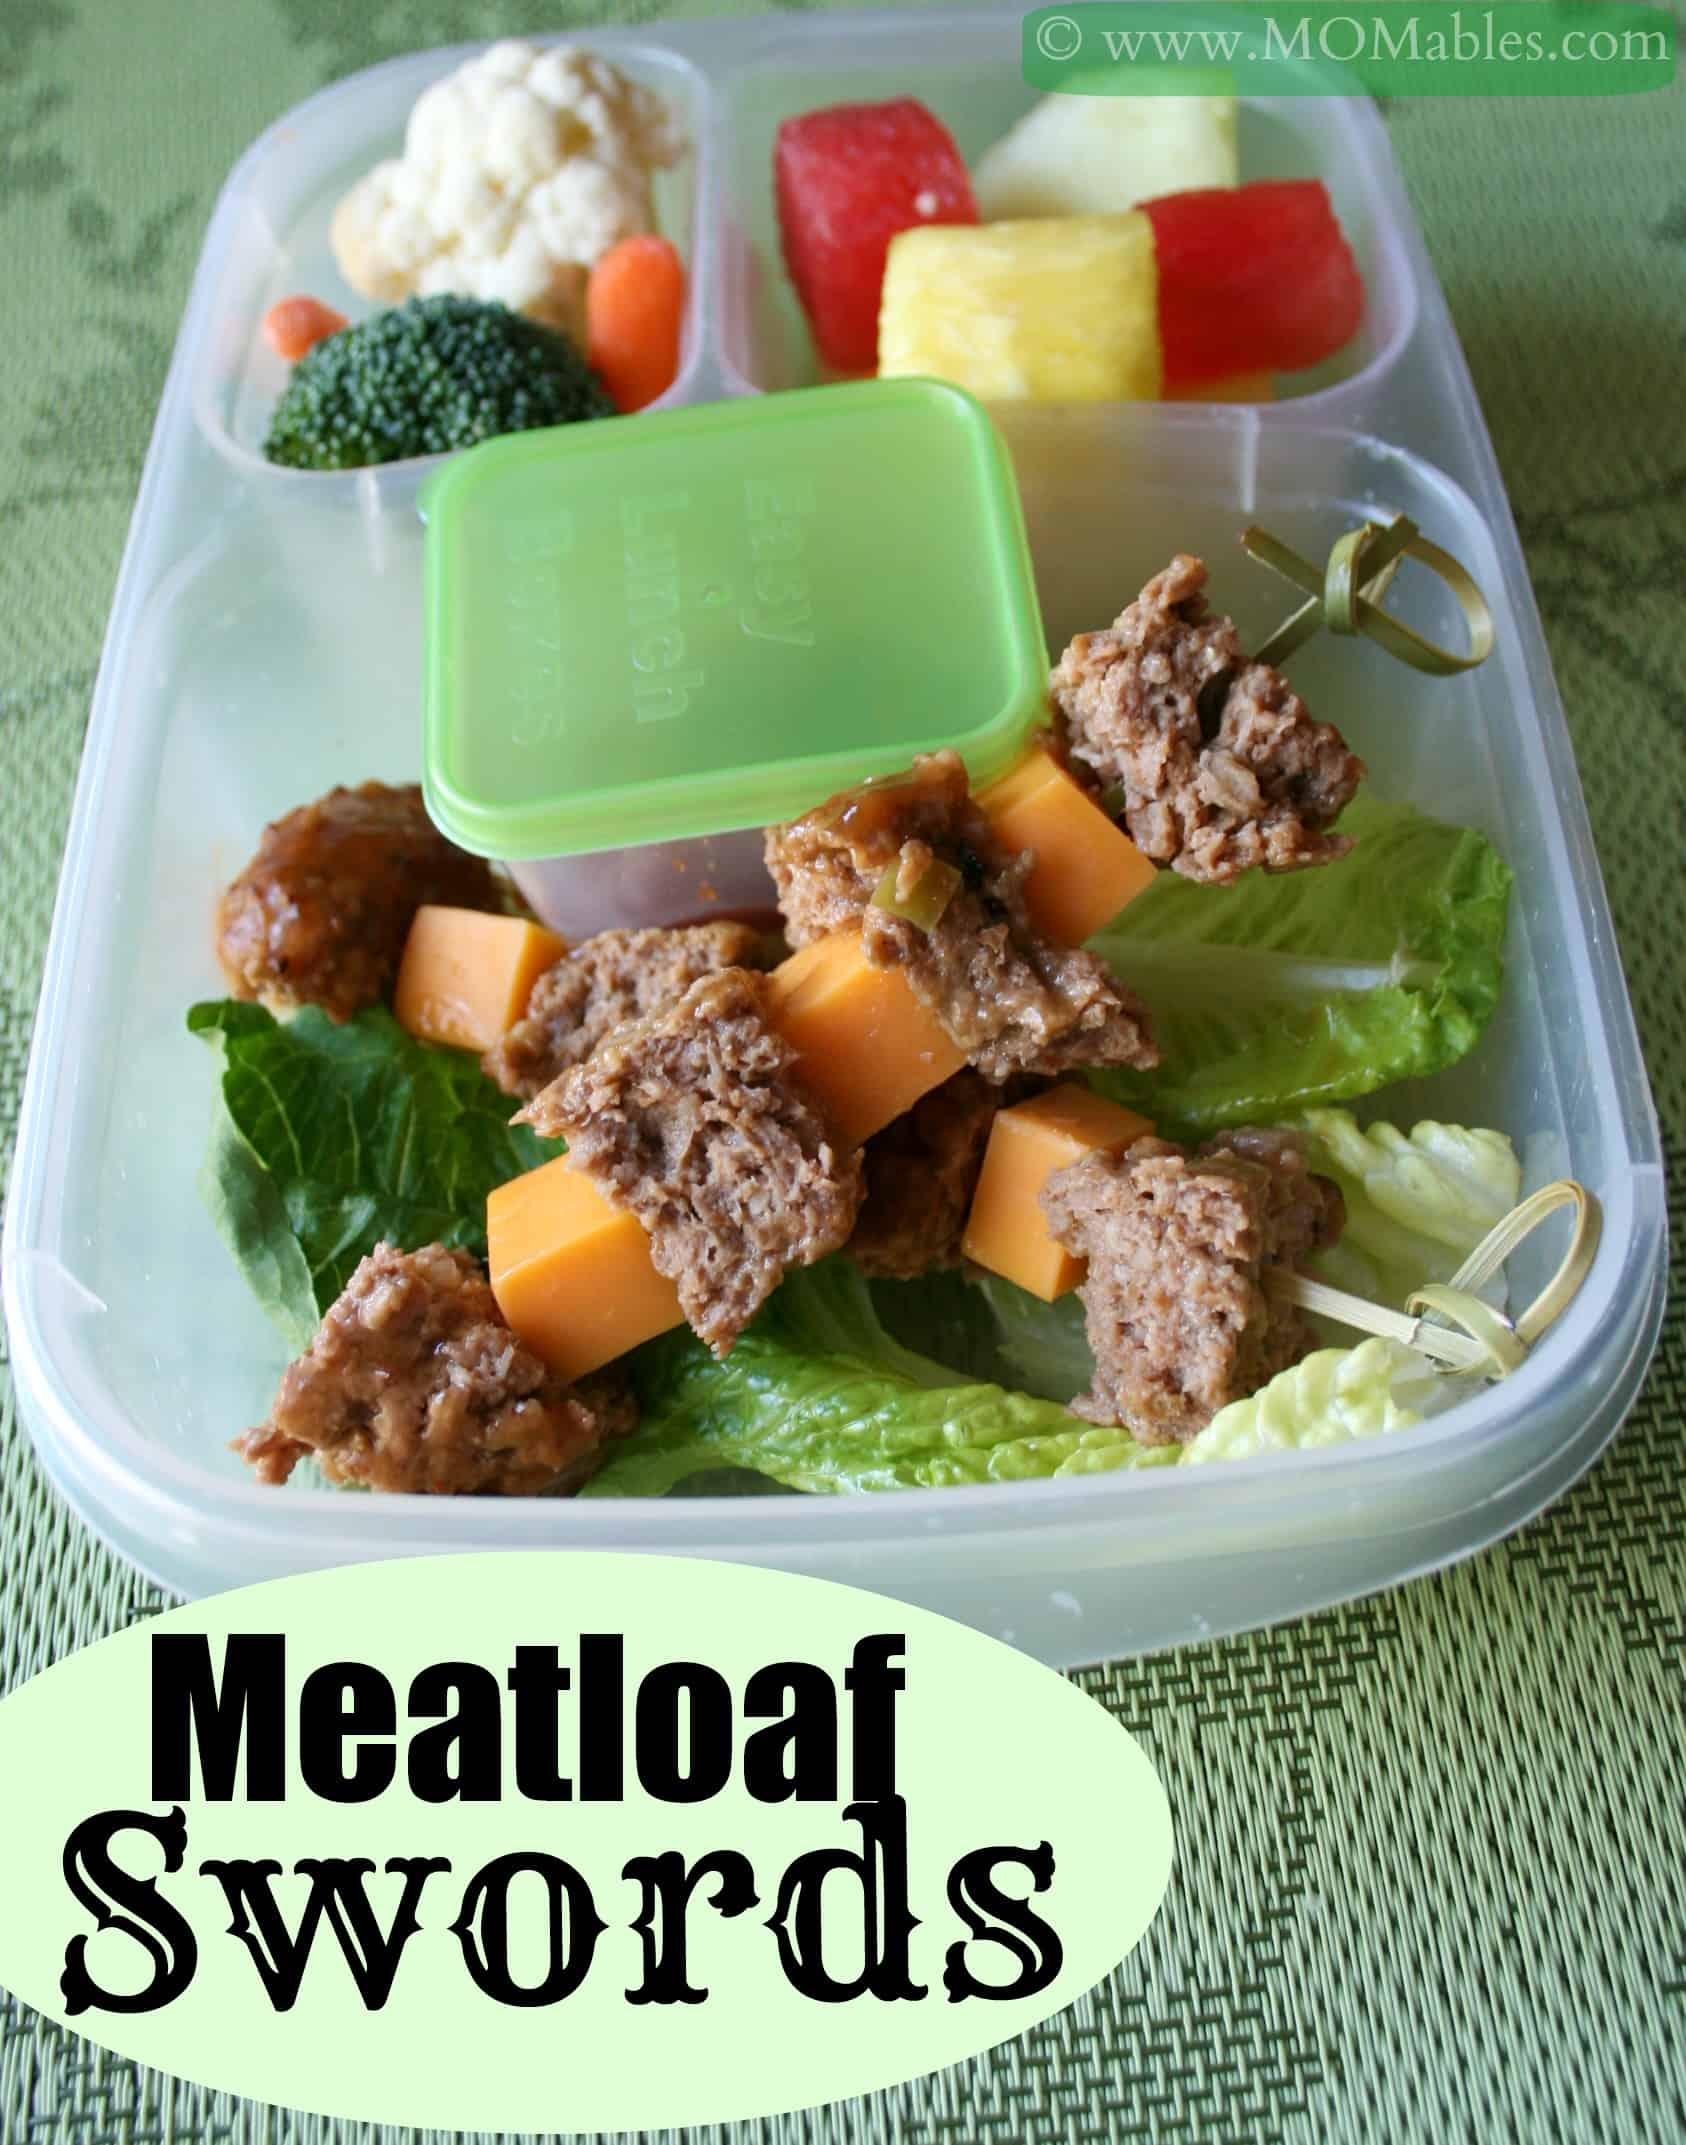 Kids Veggie Meatloaf Swords Lunch